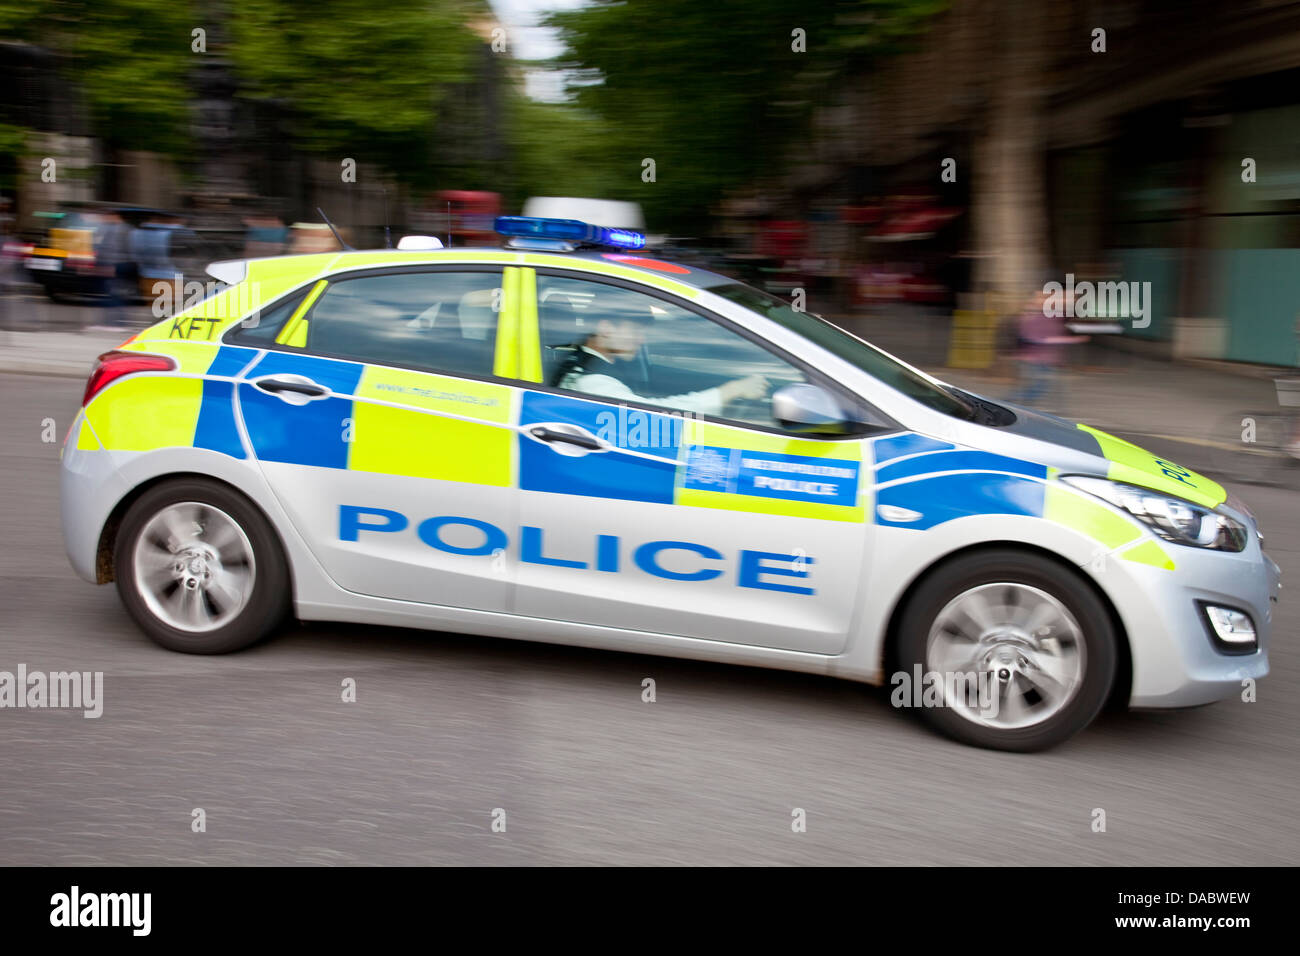 Police Car, Charing Cross Road, London, England Stock Photo